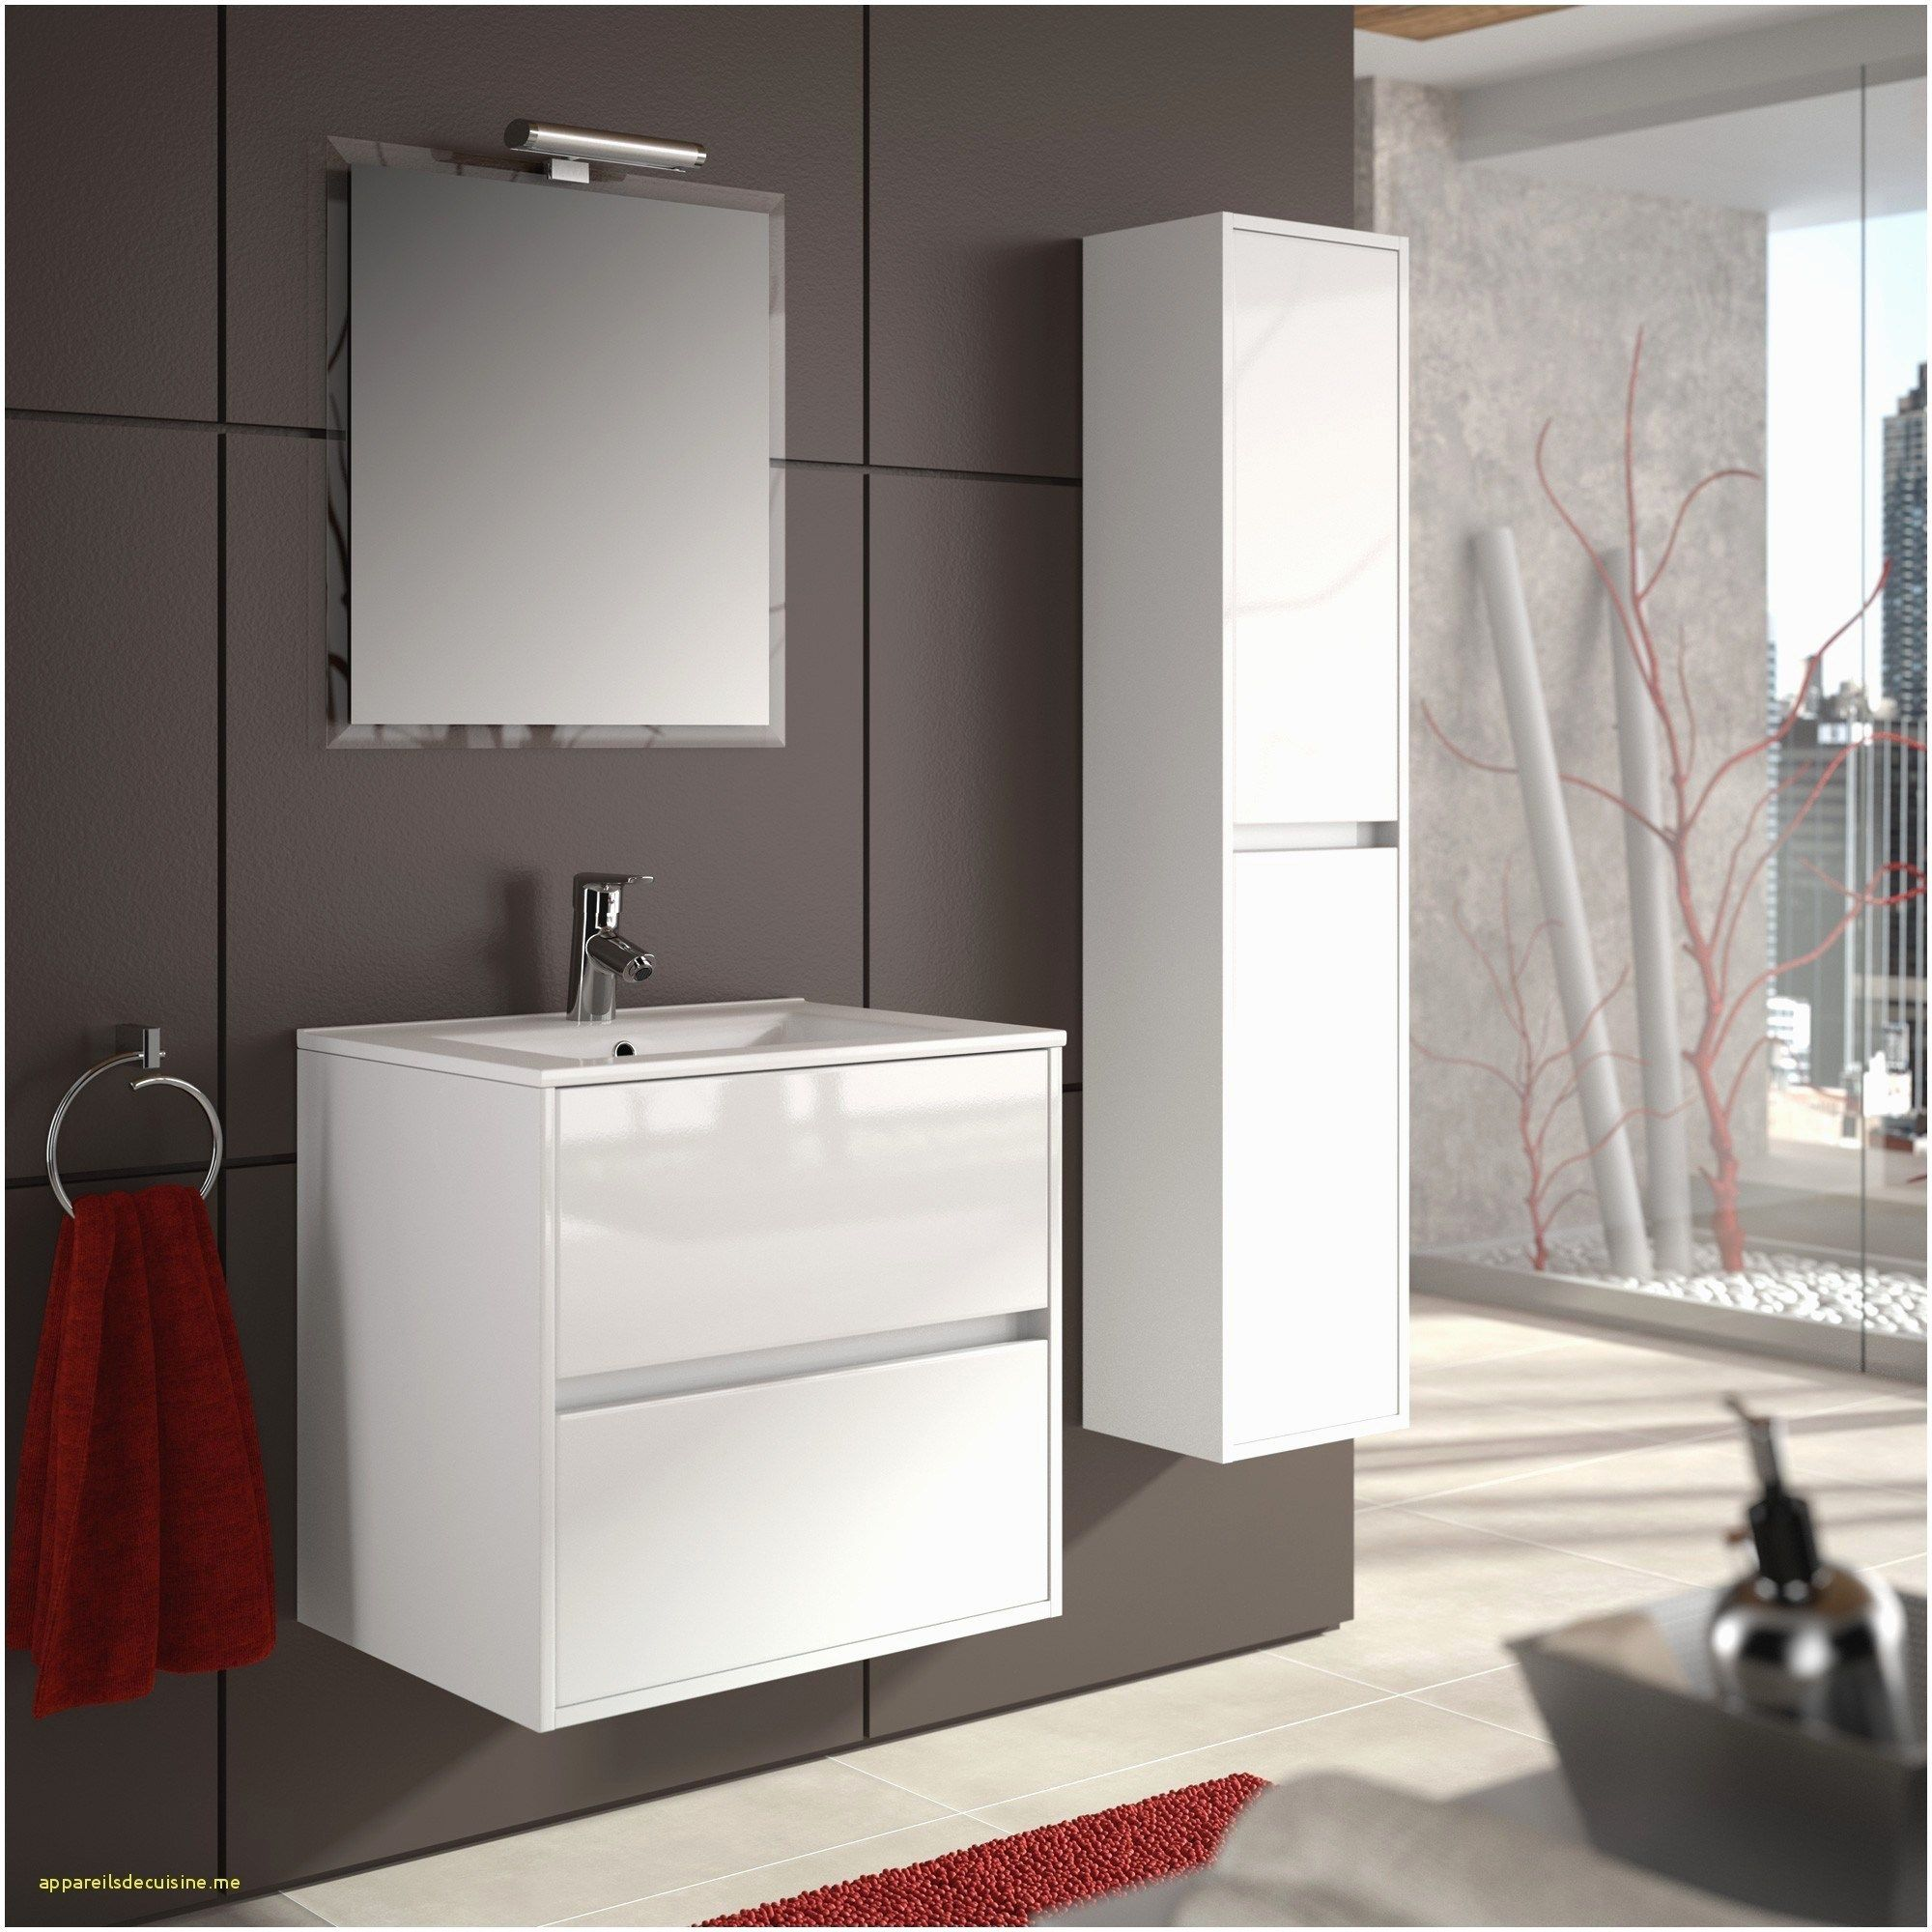 Elegant Ikea Meuble Salle De Bain Colonne Bathroom Vanity Bathroom Renovations Modern Bathroom